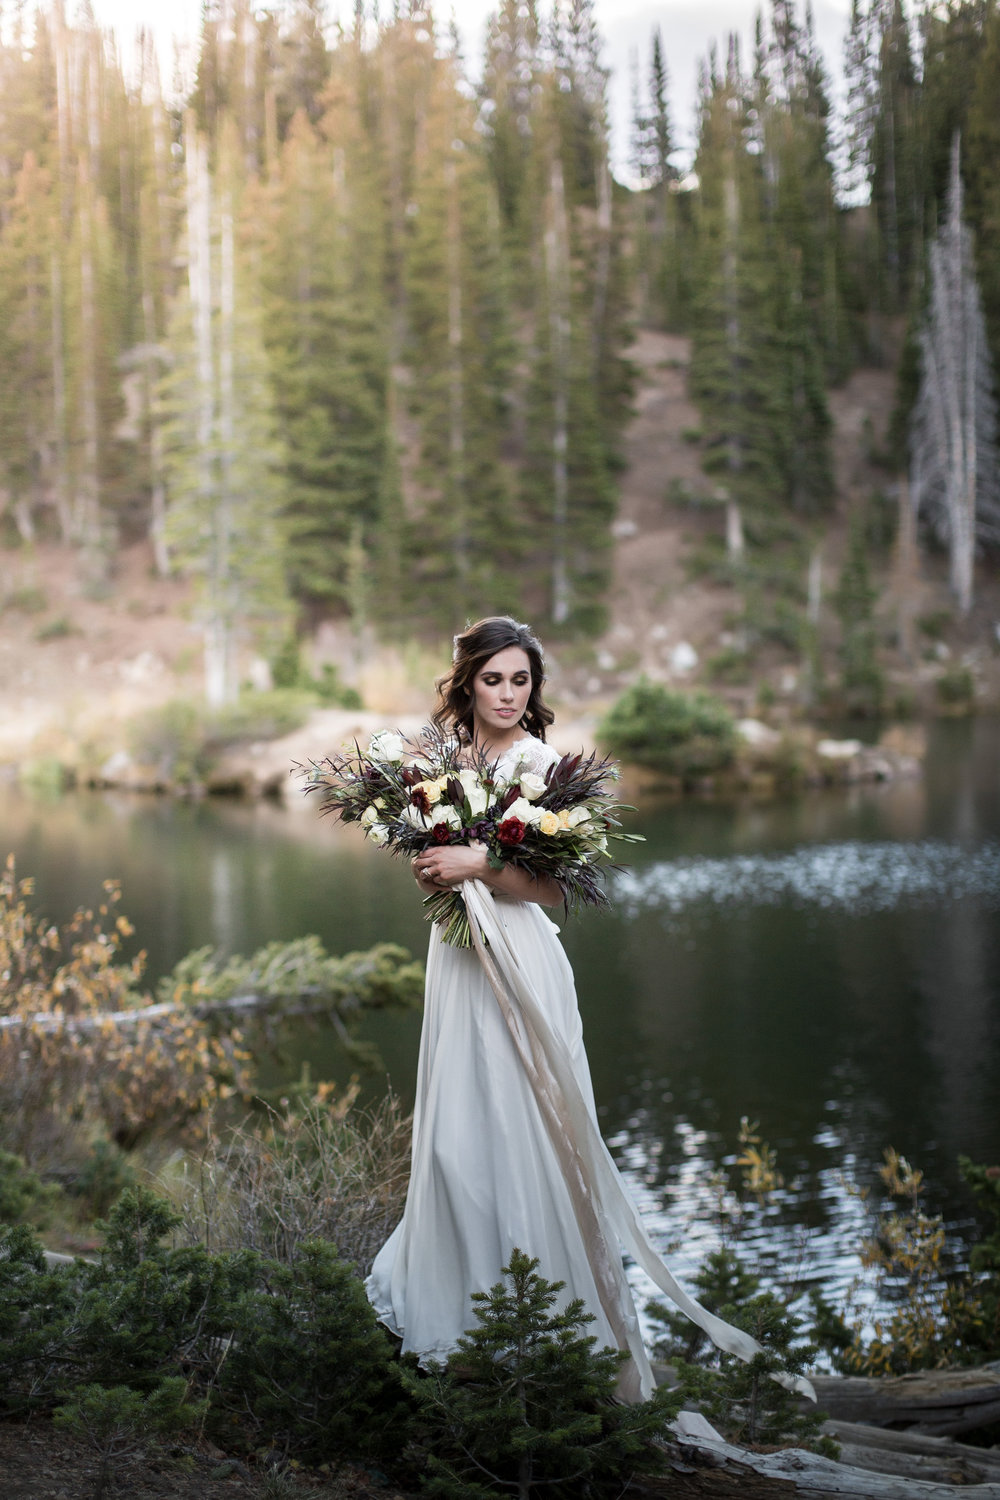 UtahValleyBrideShootTR2016 (44 of 110).jpg